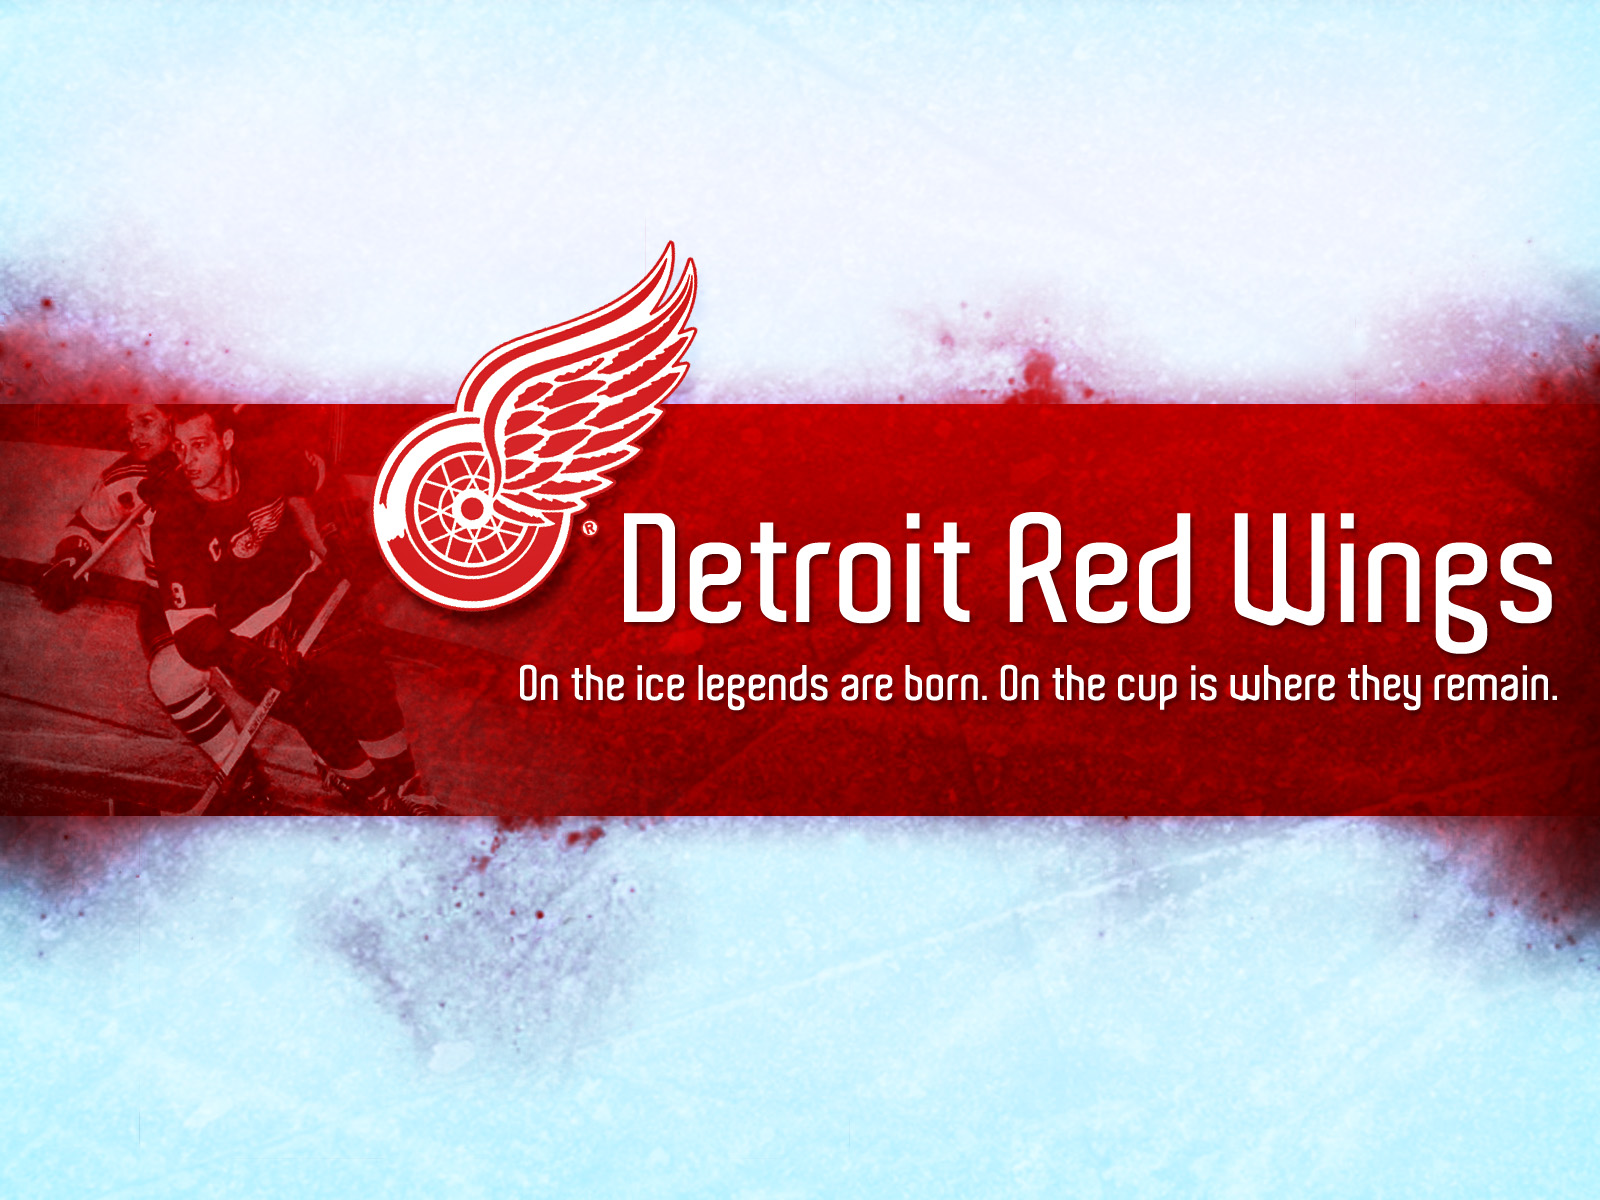 red wings wallpaper border - photo #13